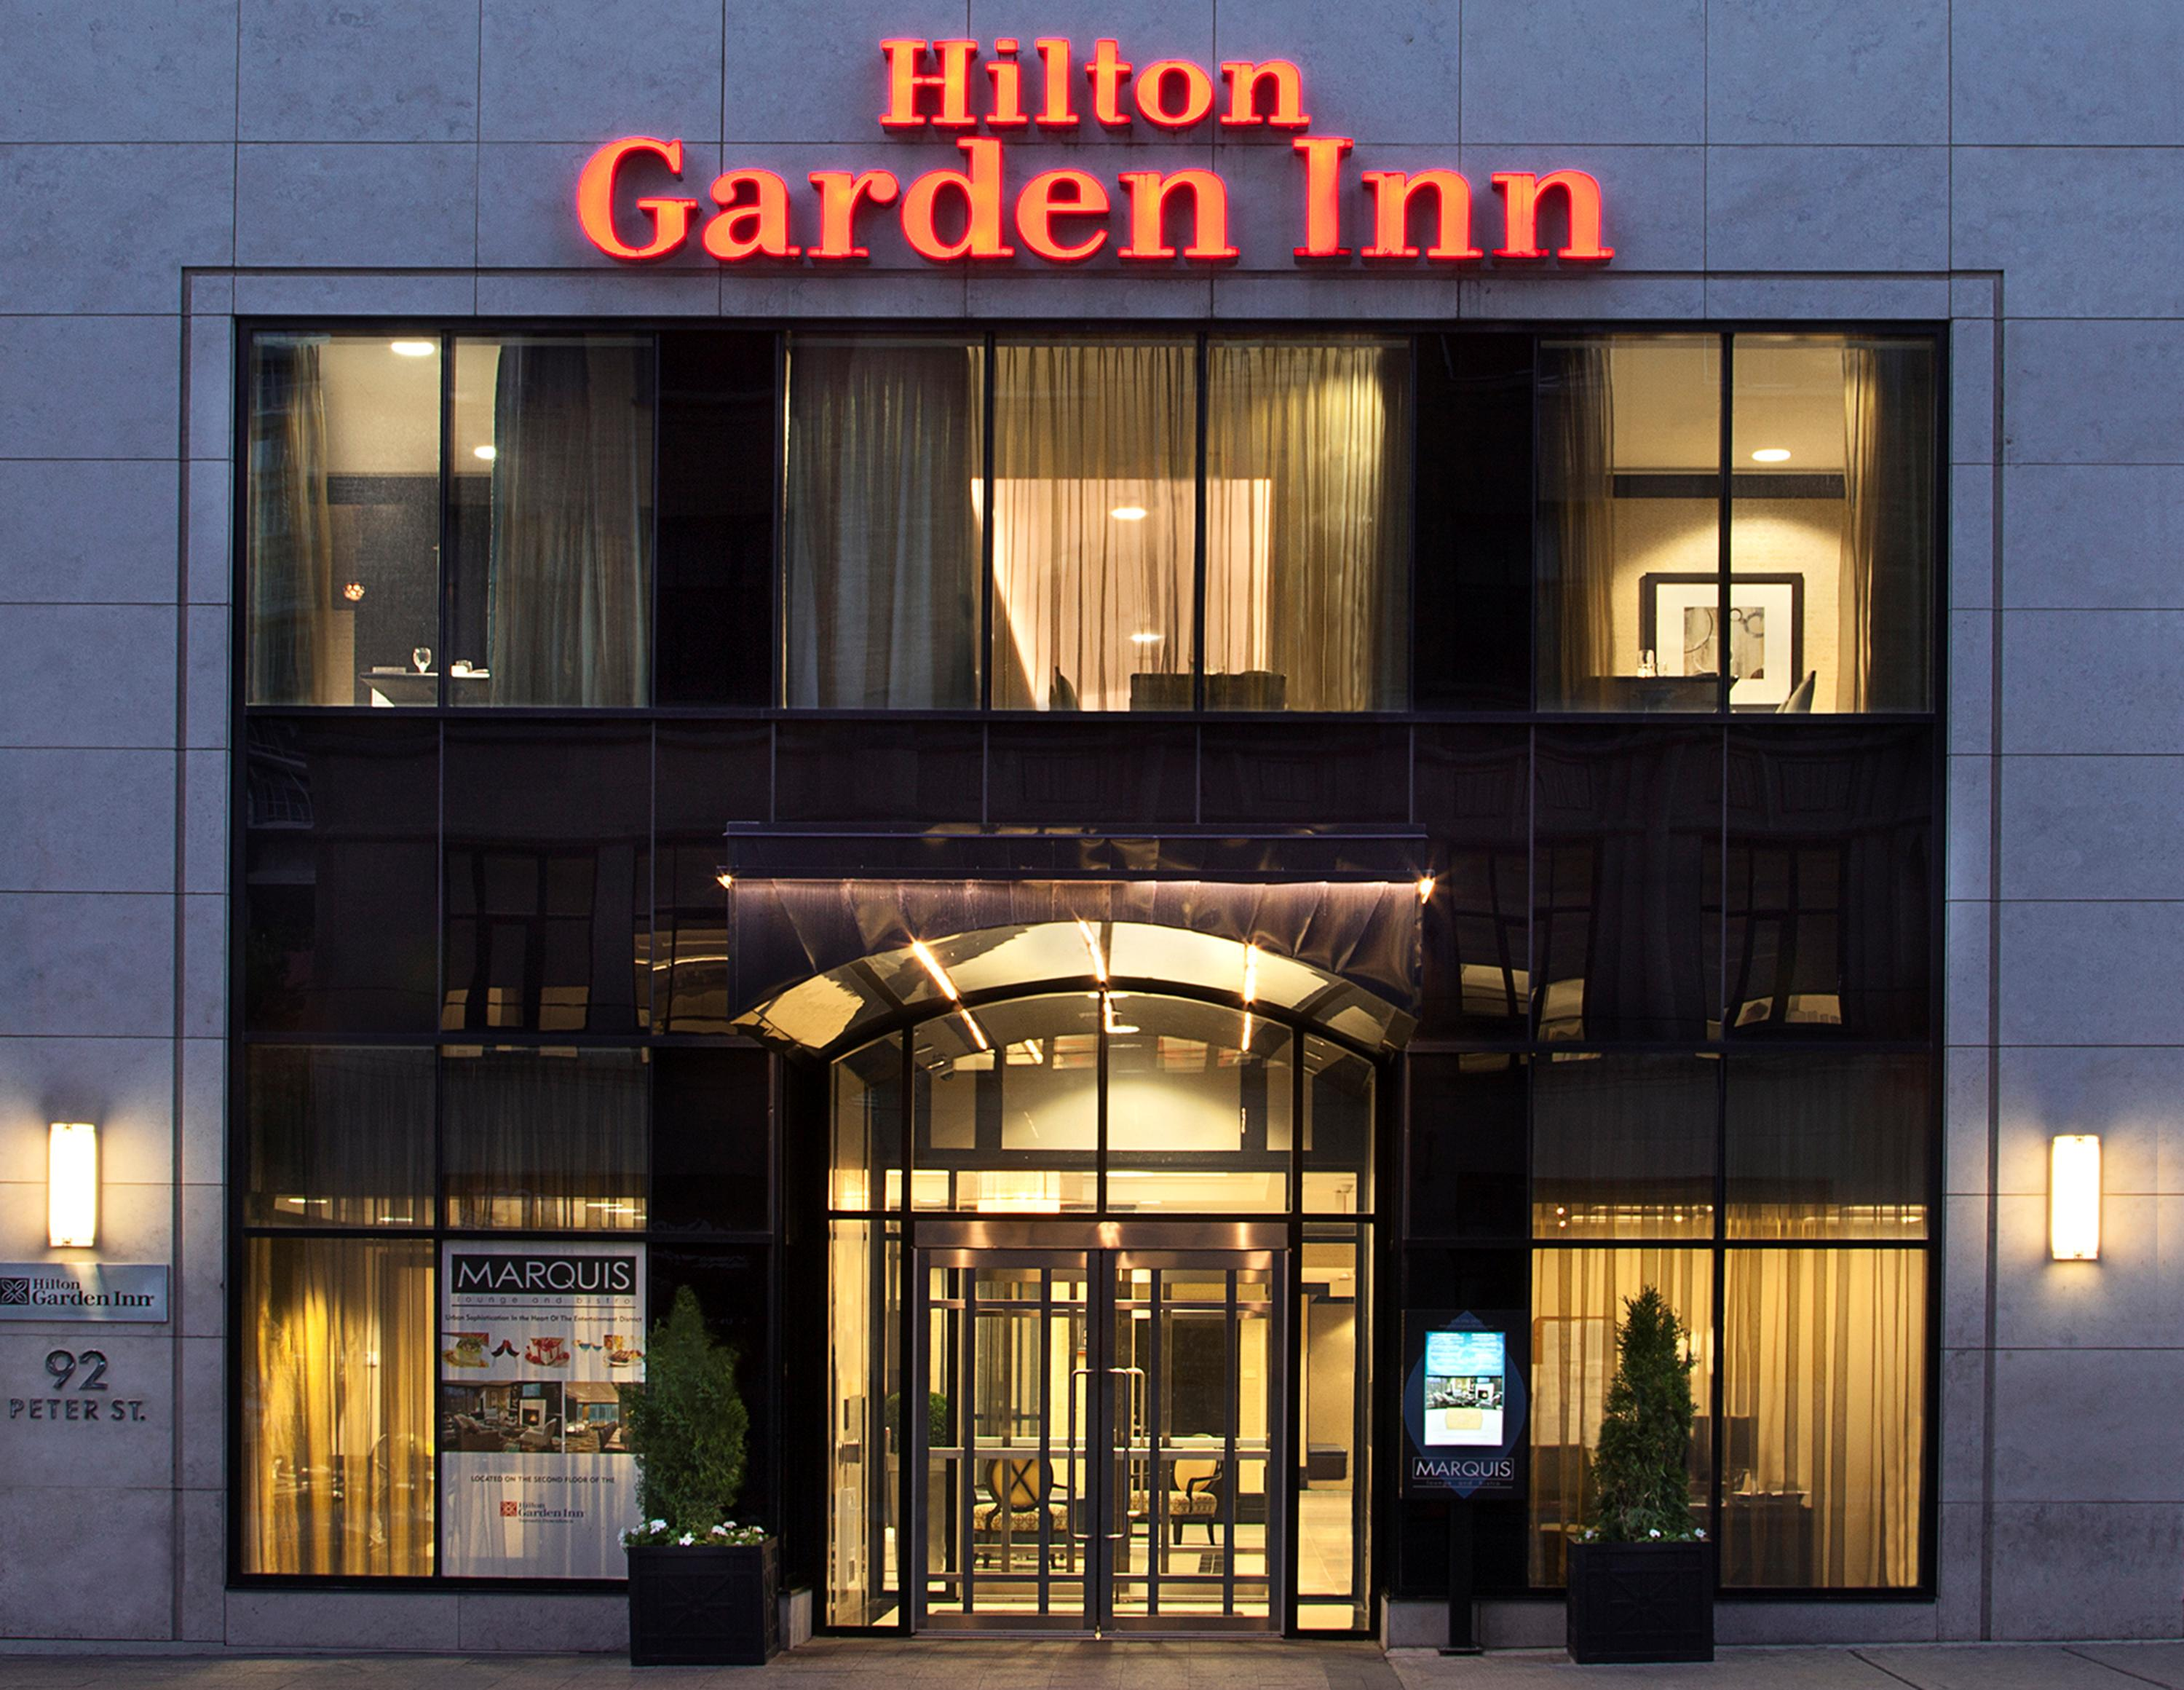 Hilton garden inn toronto downtown hotel celebrates - Hilton garden inn grand ave chicago ...